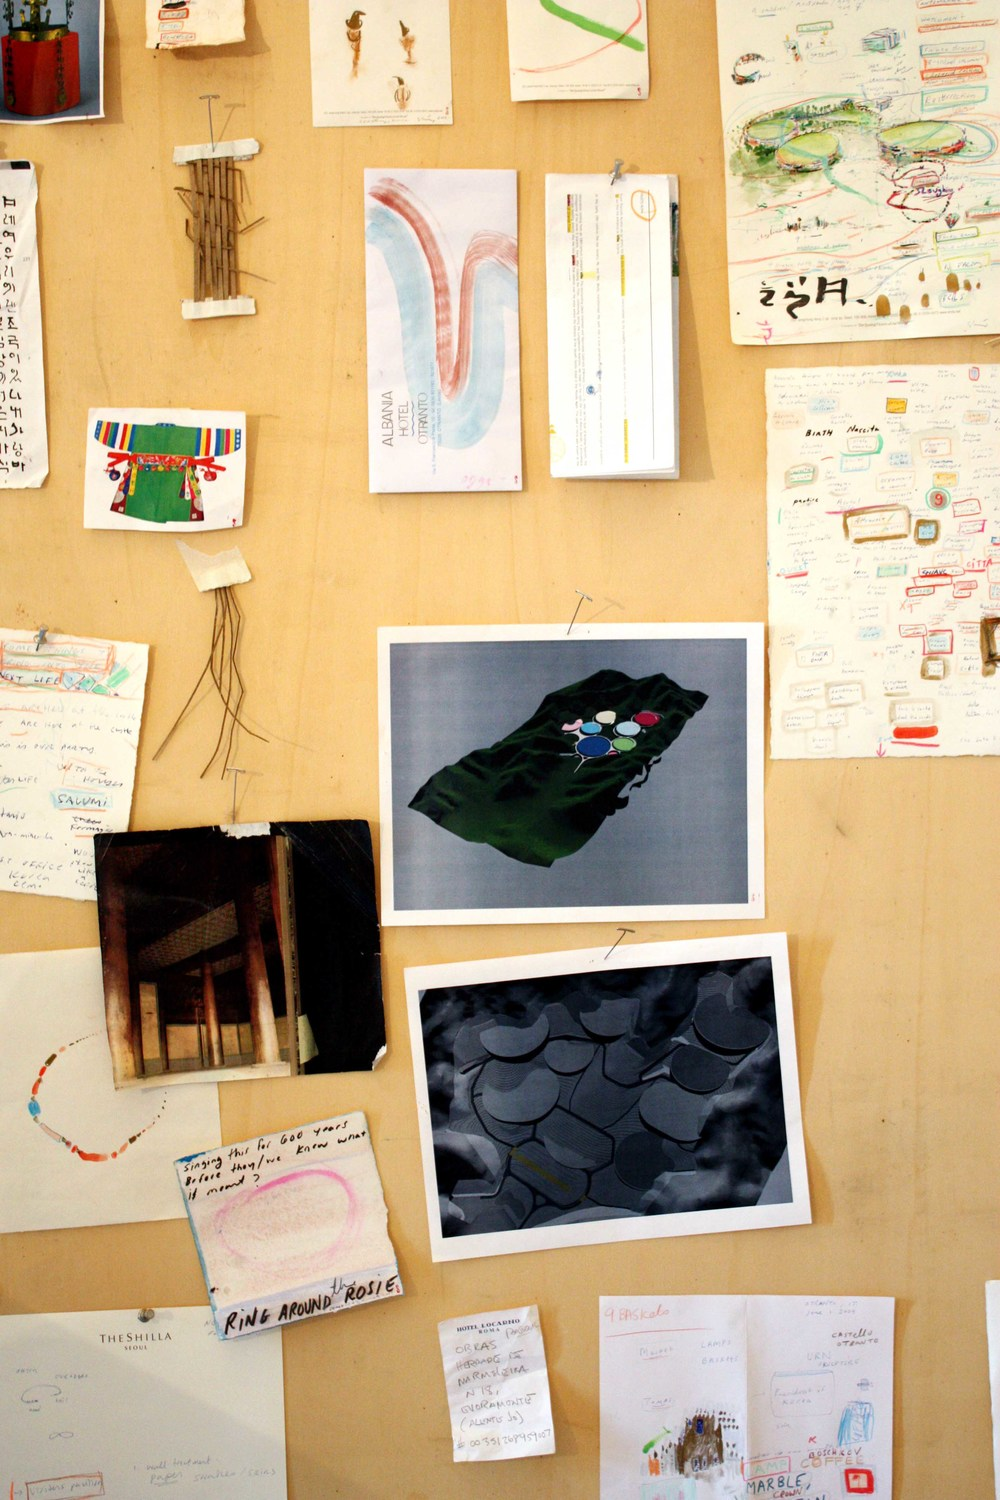 Studio Photograph, Puglia, Italy BAU Fellowship. SITE Analysis & Notes for the 50 Hector/ 9 Baskets/ Ho-Jeung Park, Korea, 2009 -